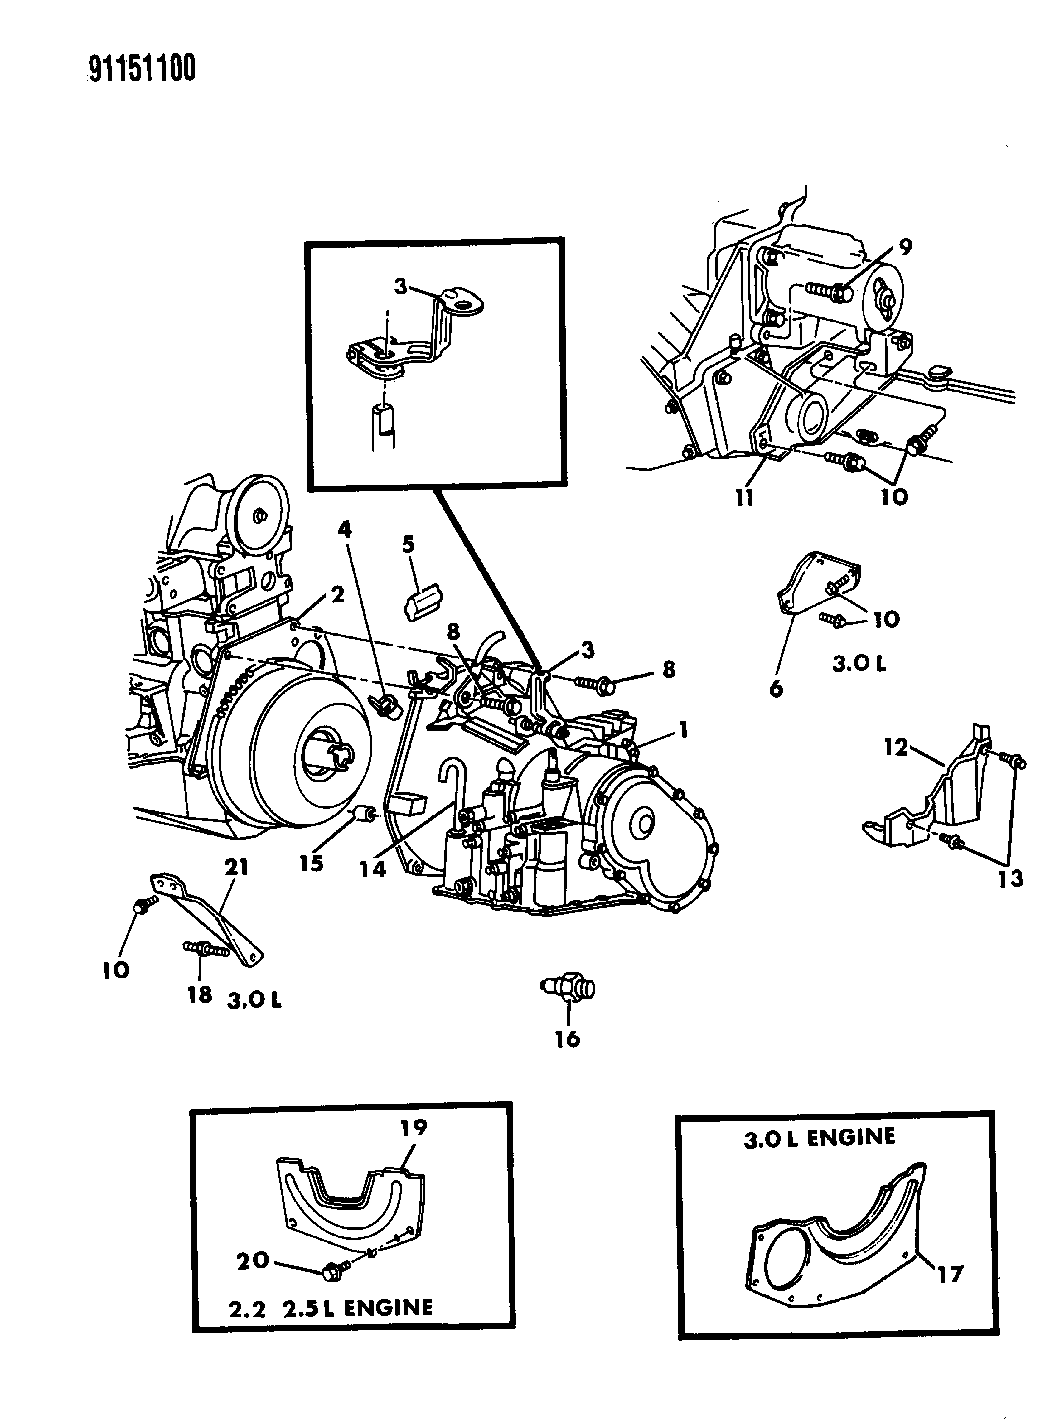 1991 Chrysler New Yorker Fifth Avenue Transaxle Assemblies Mounting 2 5l Engine Diagram